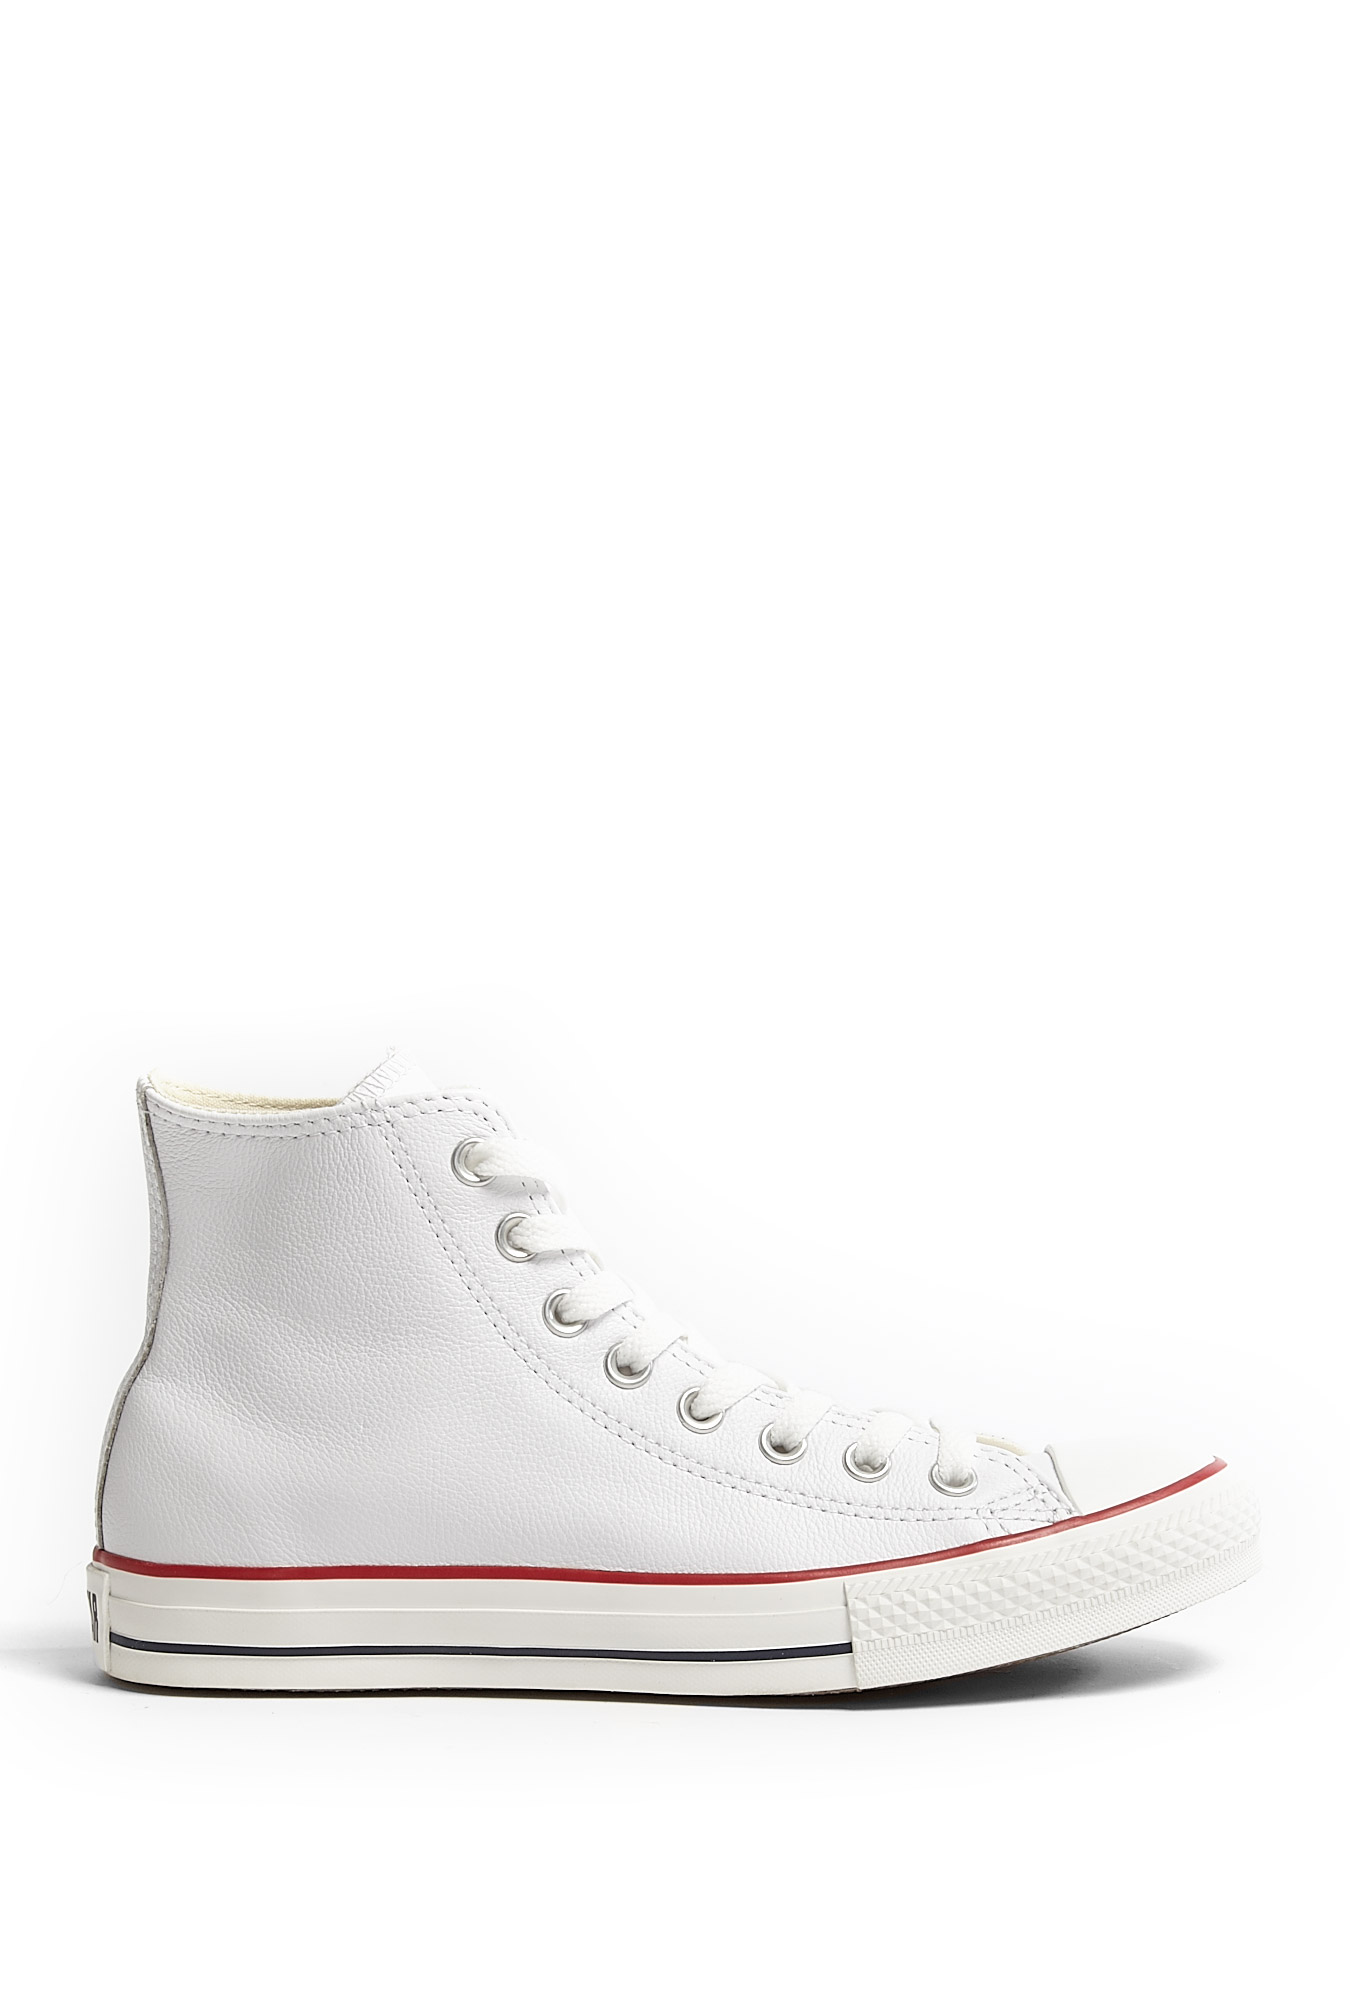 Converse White Leather Chuck Taylor All Star High Tops in ...